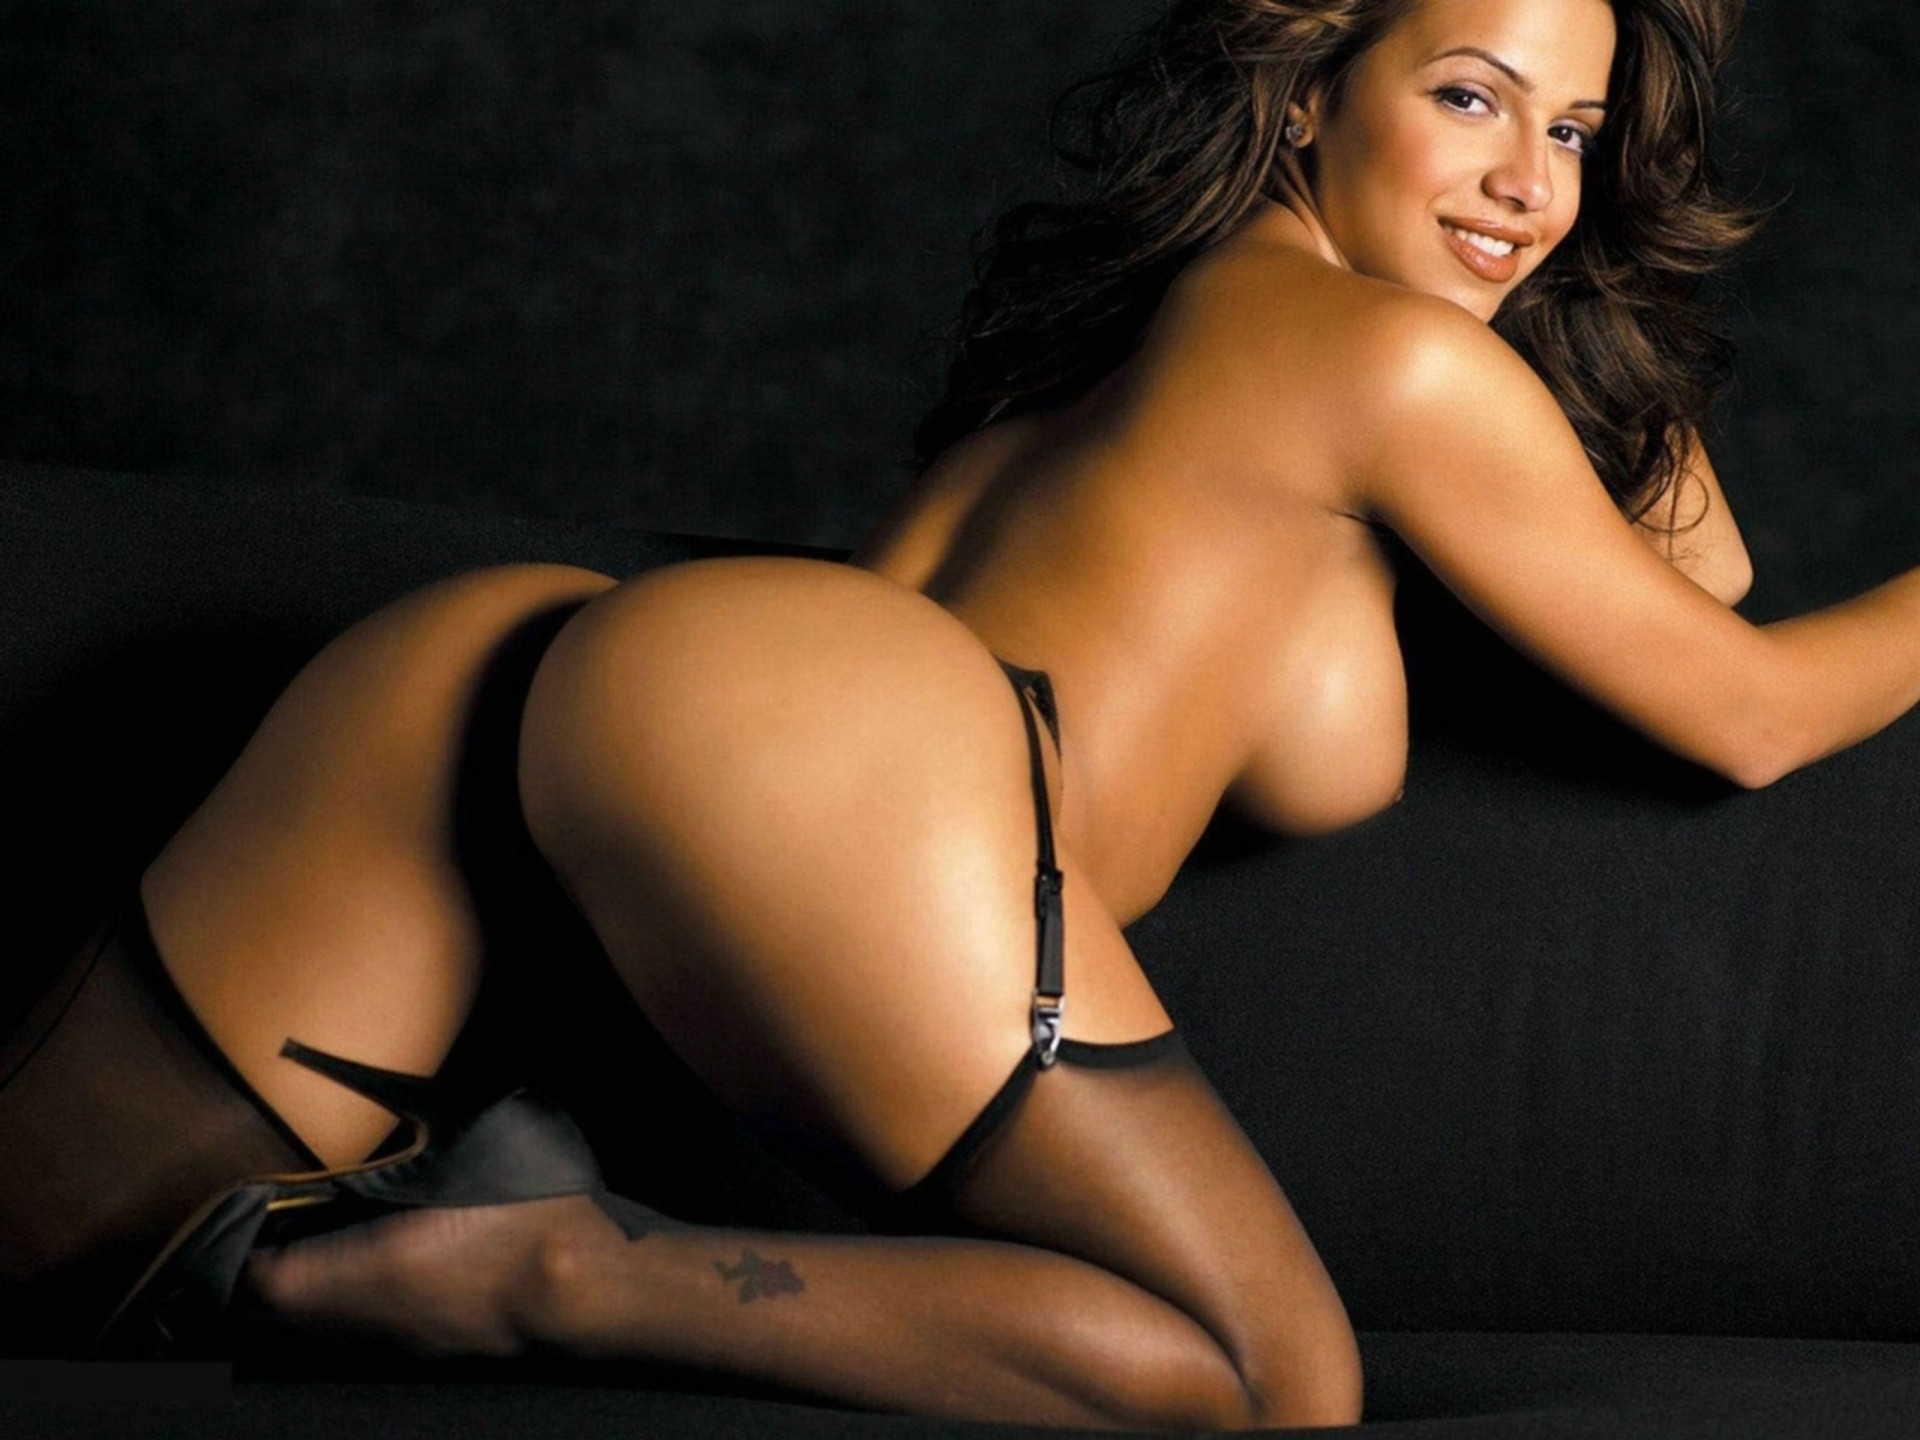 vida-guerra-nude-cell-phone-pics-nude-vagina-and-pigtails